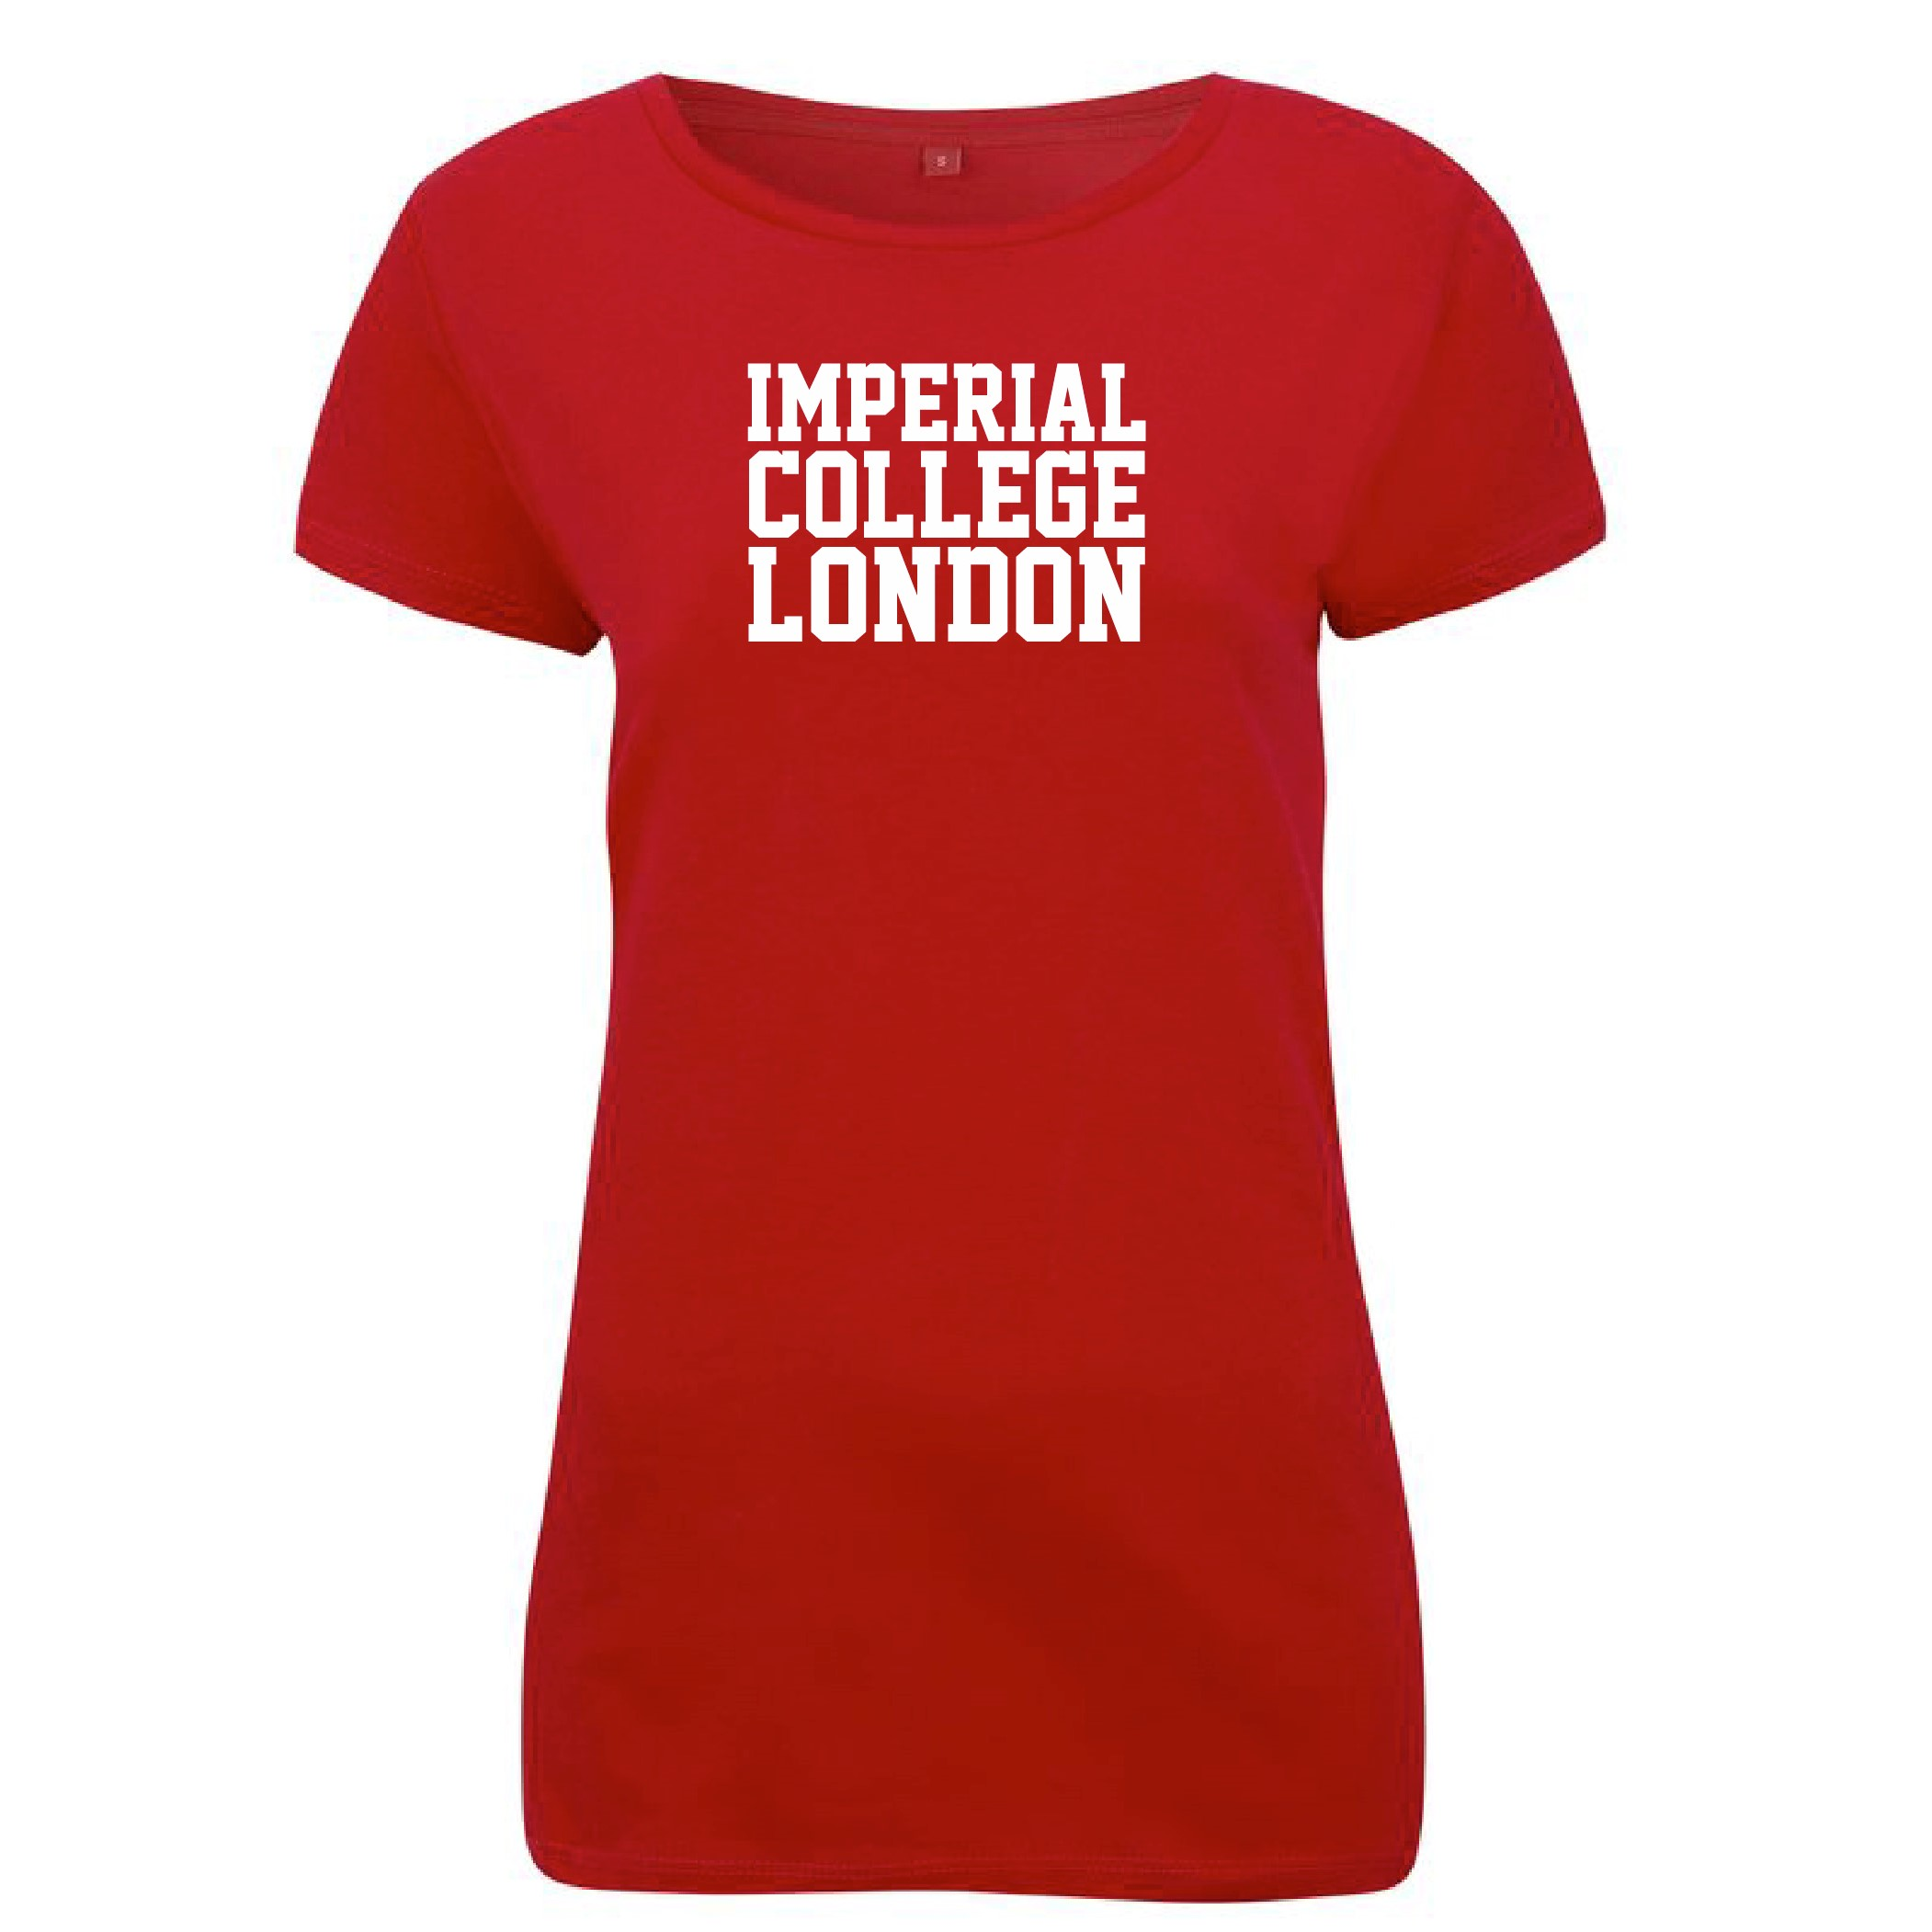 Ladies Imperial Block Letter T-Shirt in Red